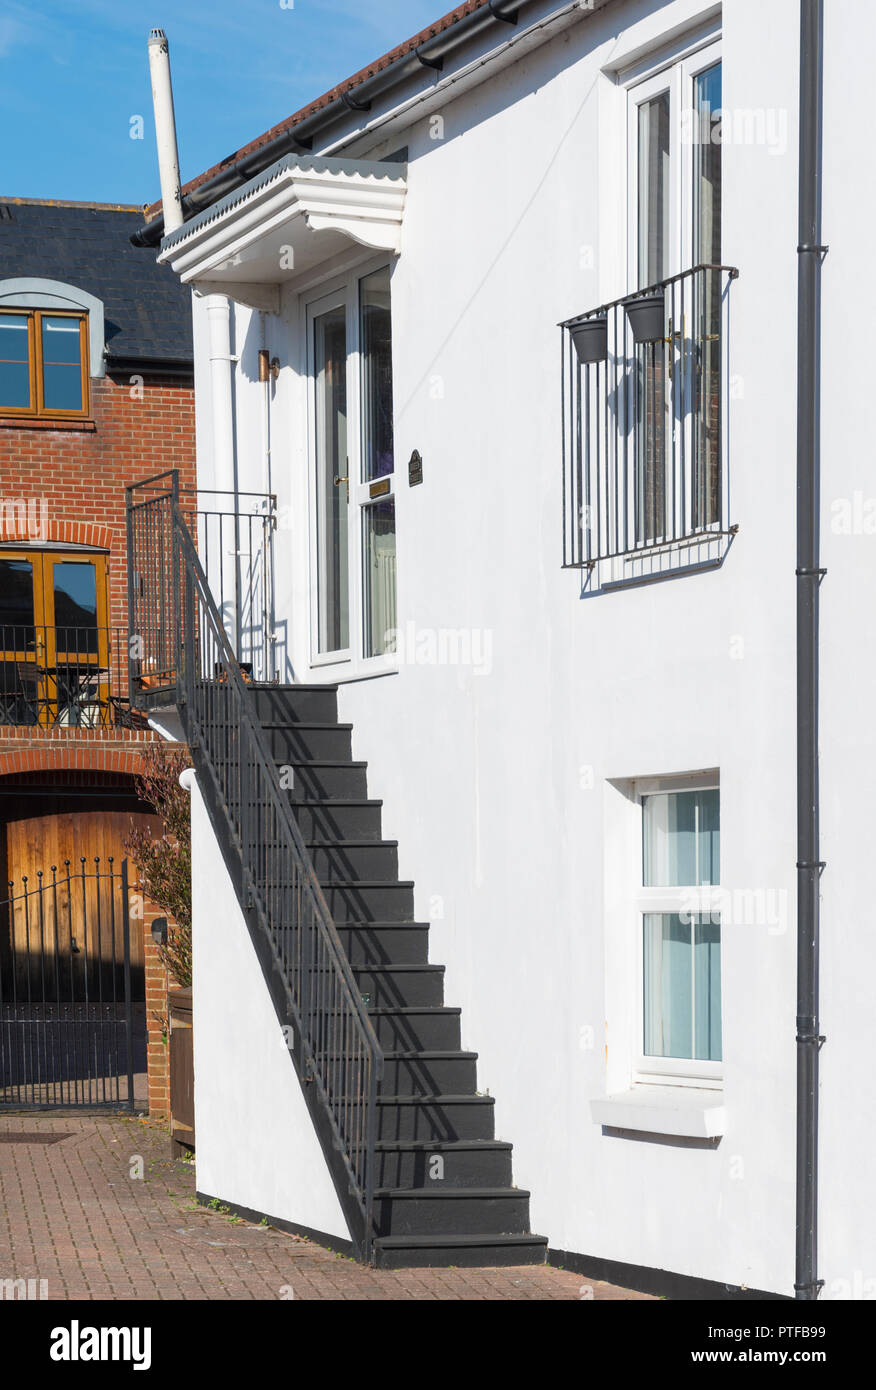 Stairs to side entrance door of a house in Emsworth, Hampshire, England, UK. - Stock Image